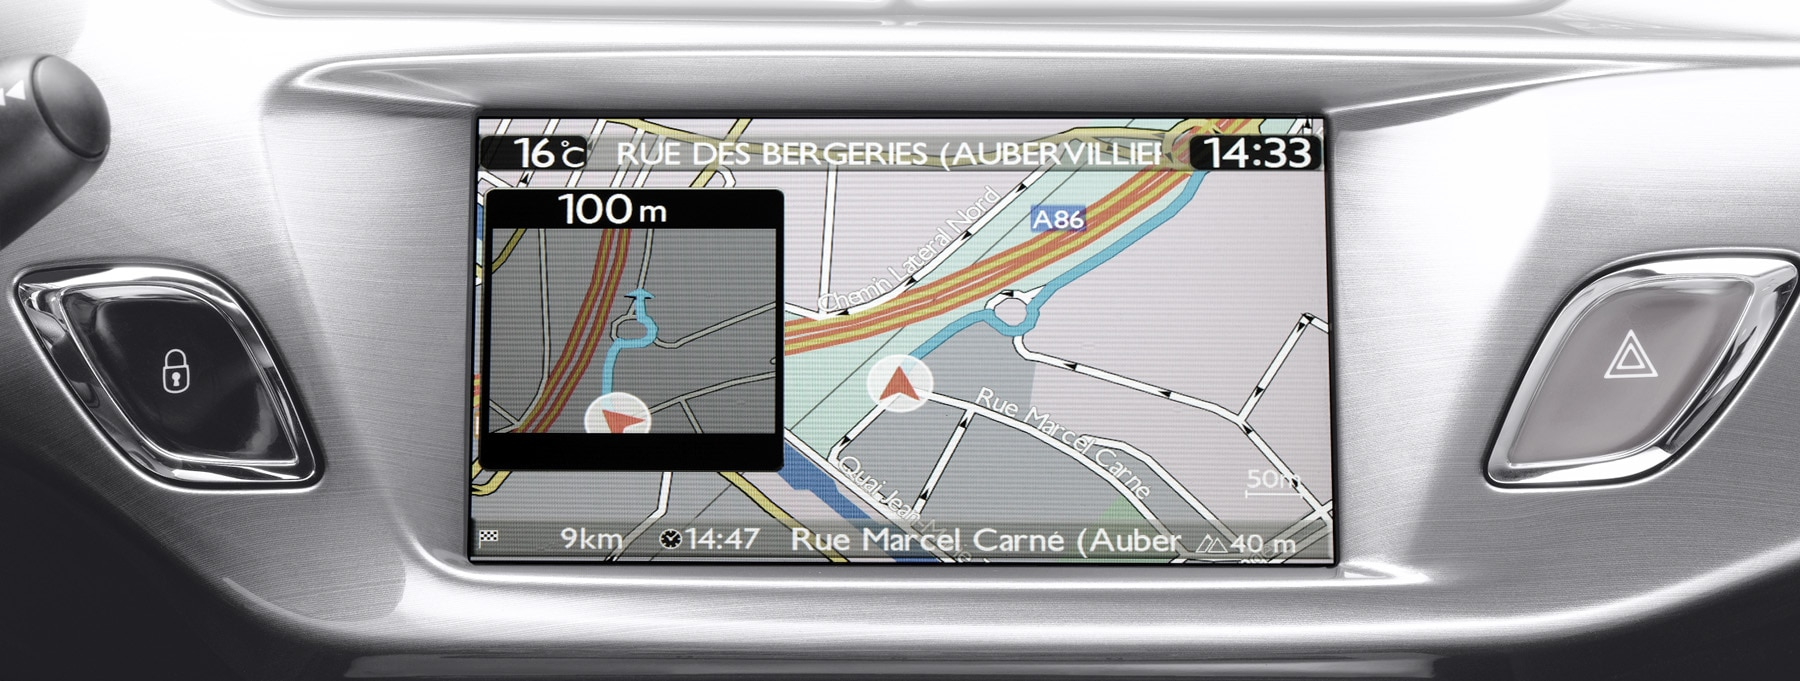 Navigation systems by Citroën